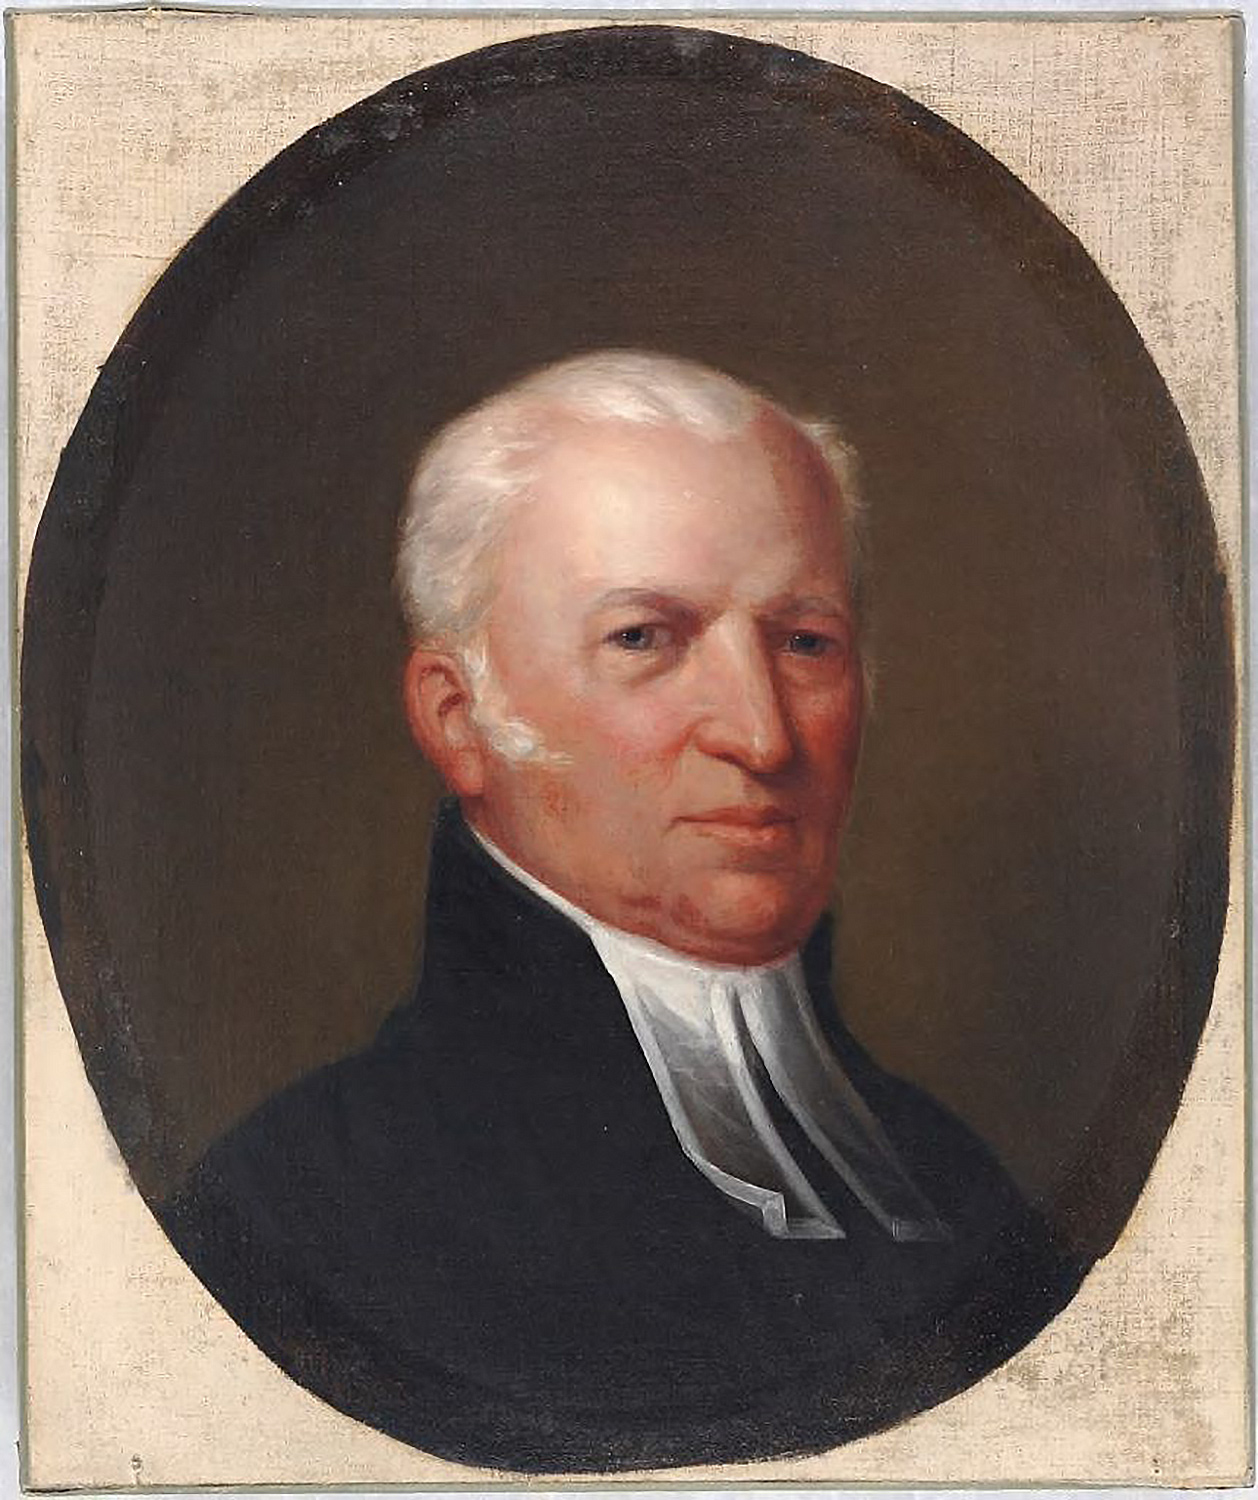 Eliphalet Pearson, depicted in this post-1817 portrait, debated with his classmate Theodore Parsons in July 1773. There are no extant images of Parsons.